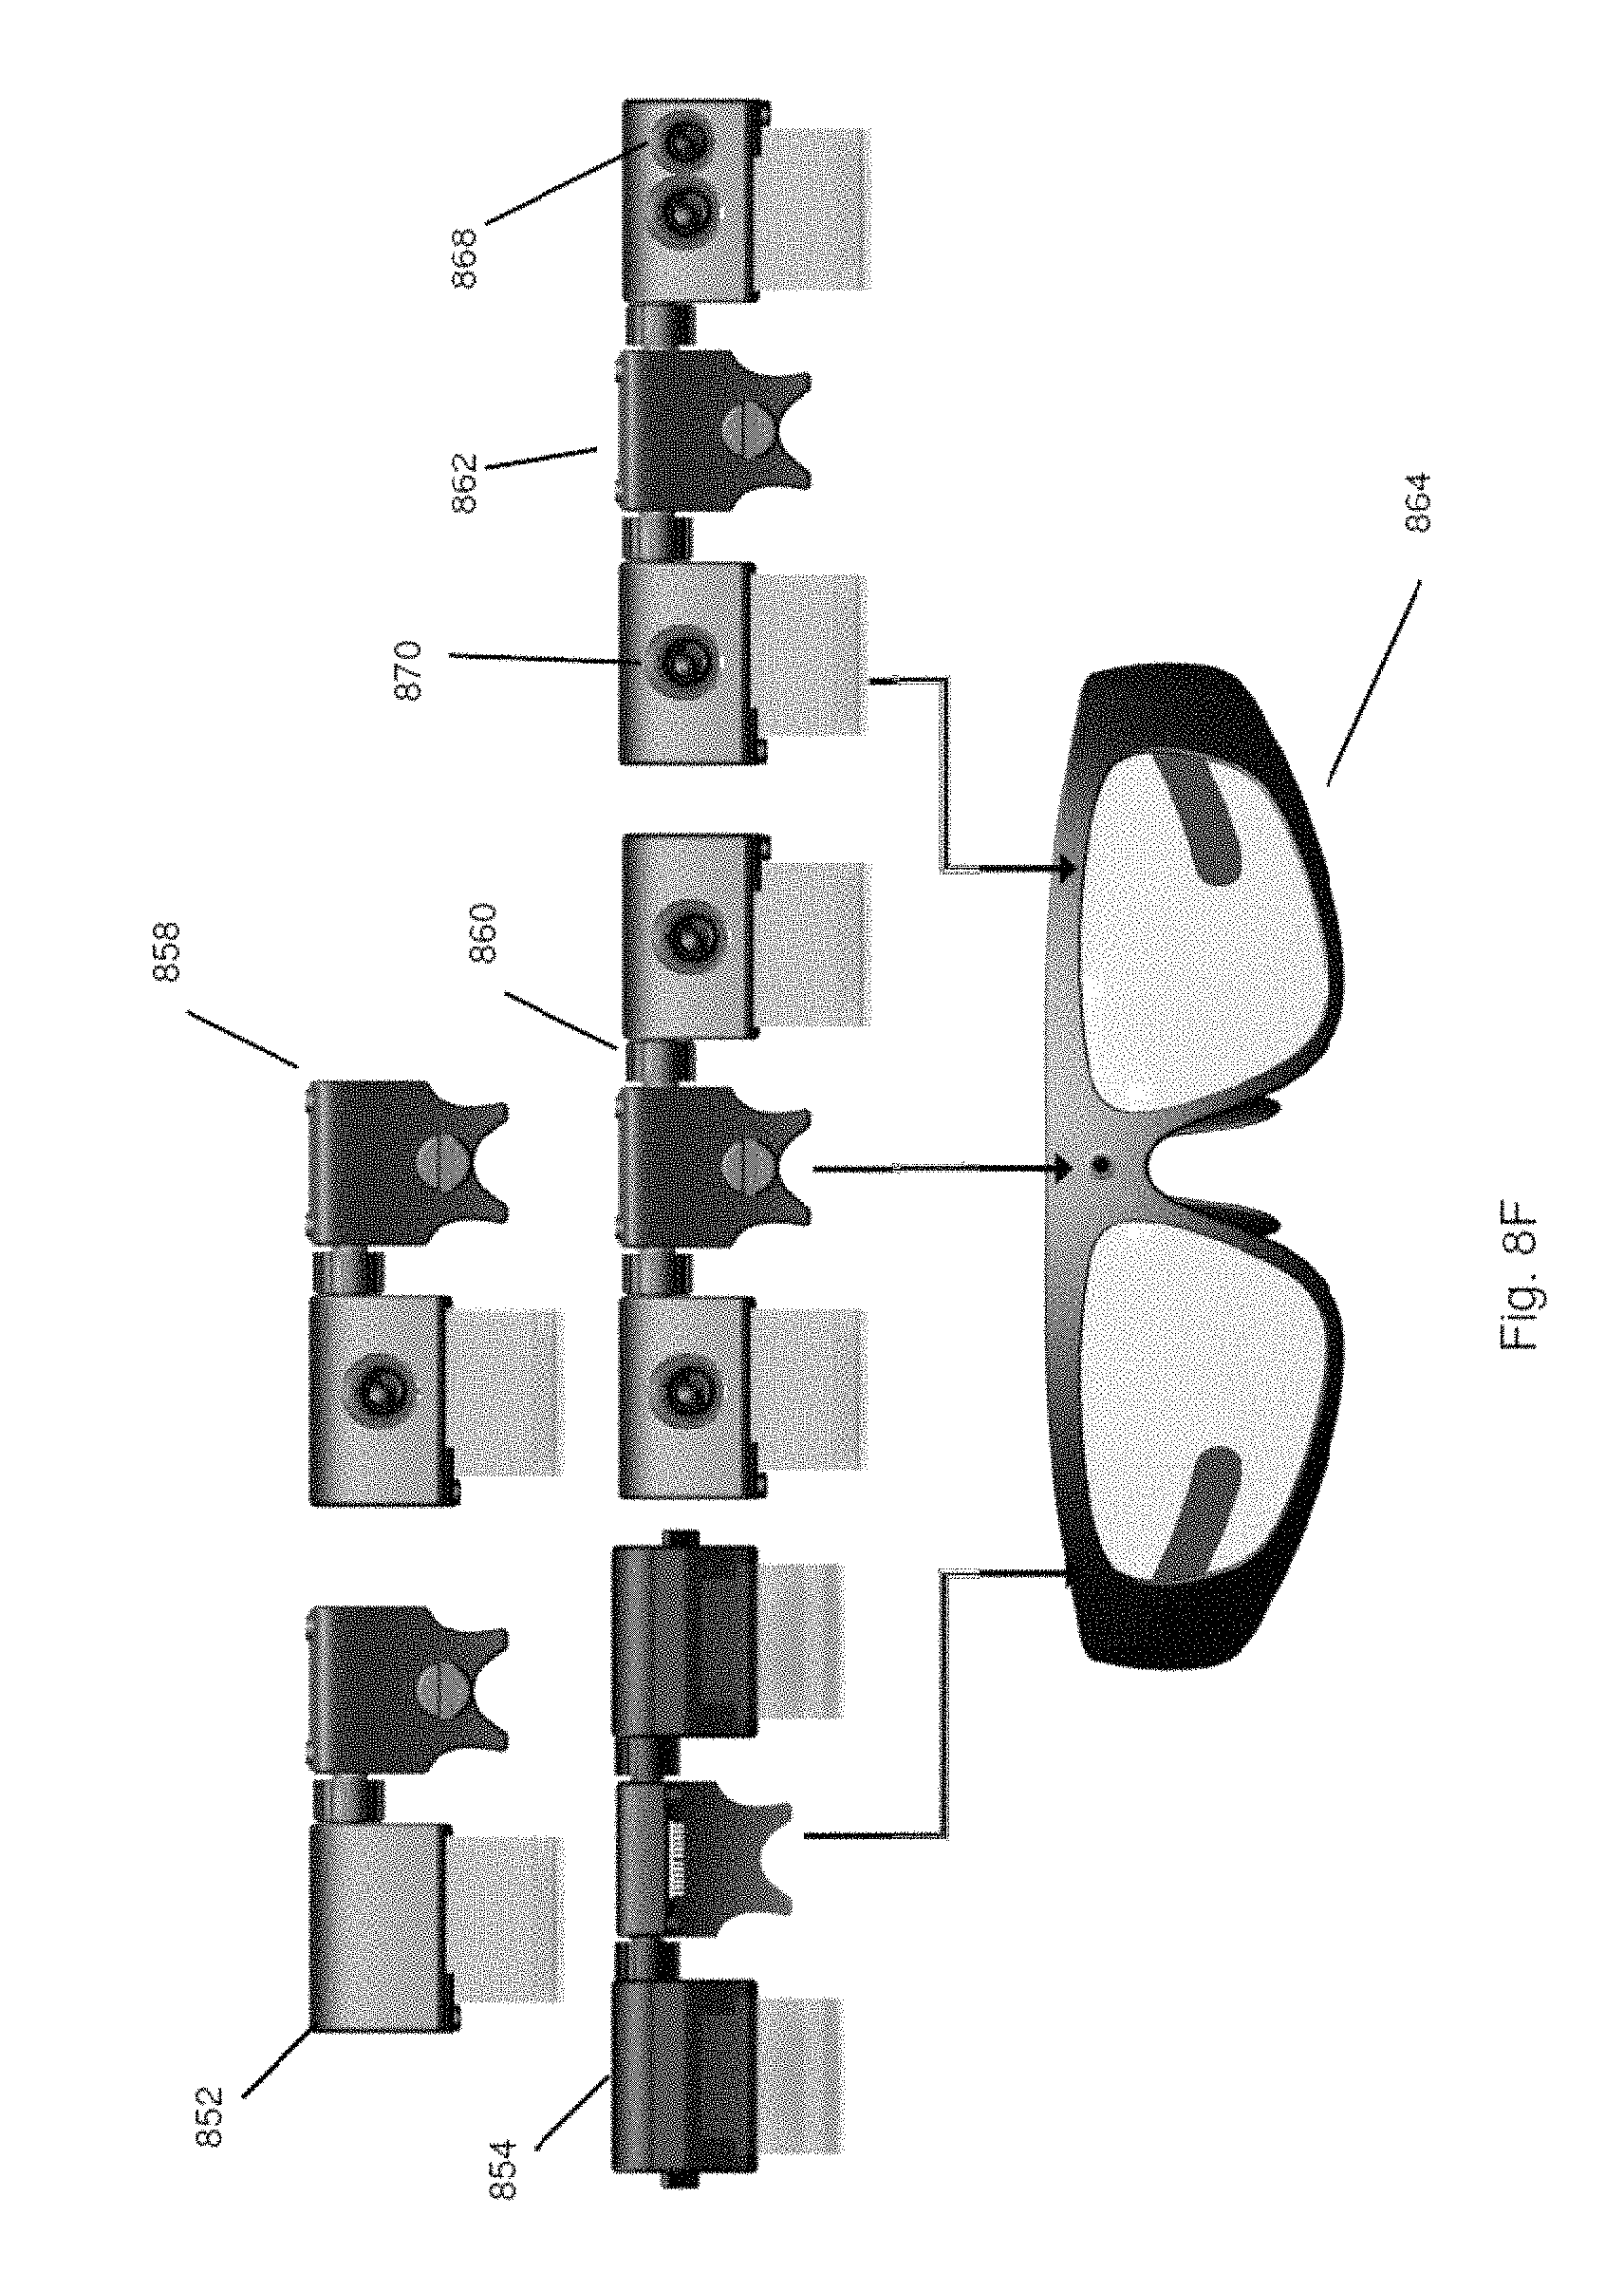 Patent Us 9759917 B2 Inexpensive Incubator Alarm System Using Linux Images